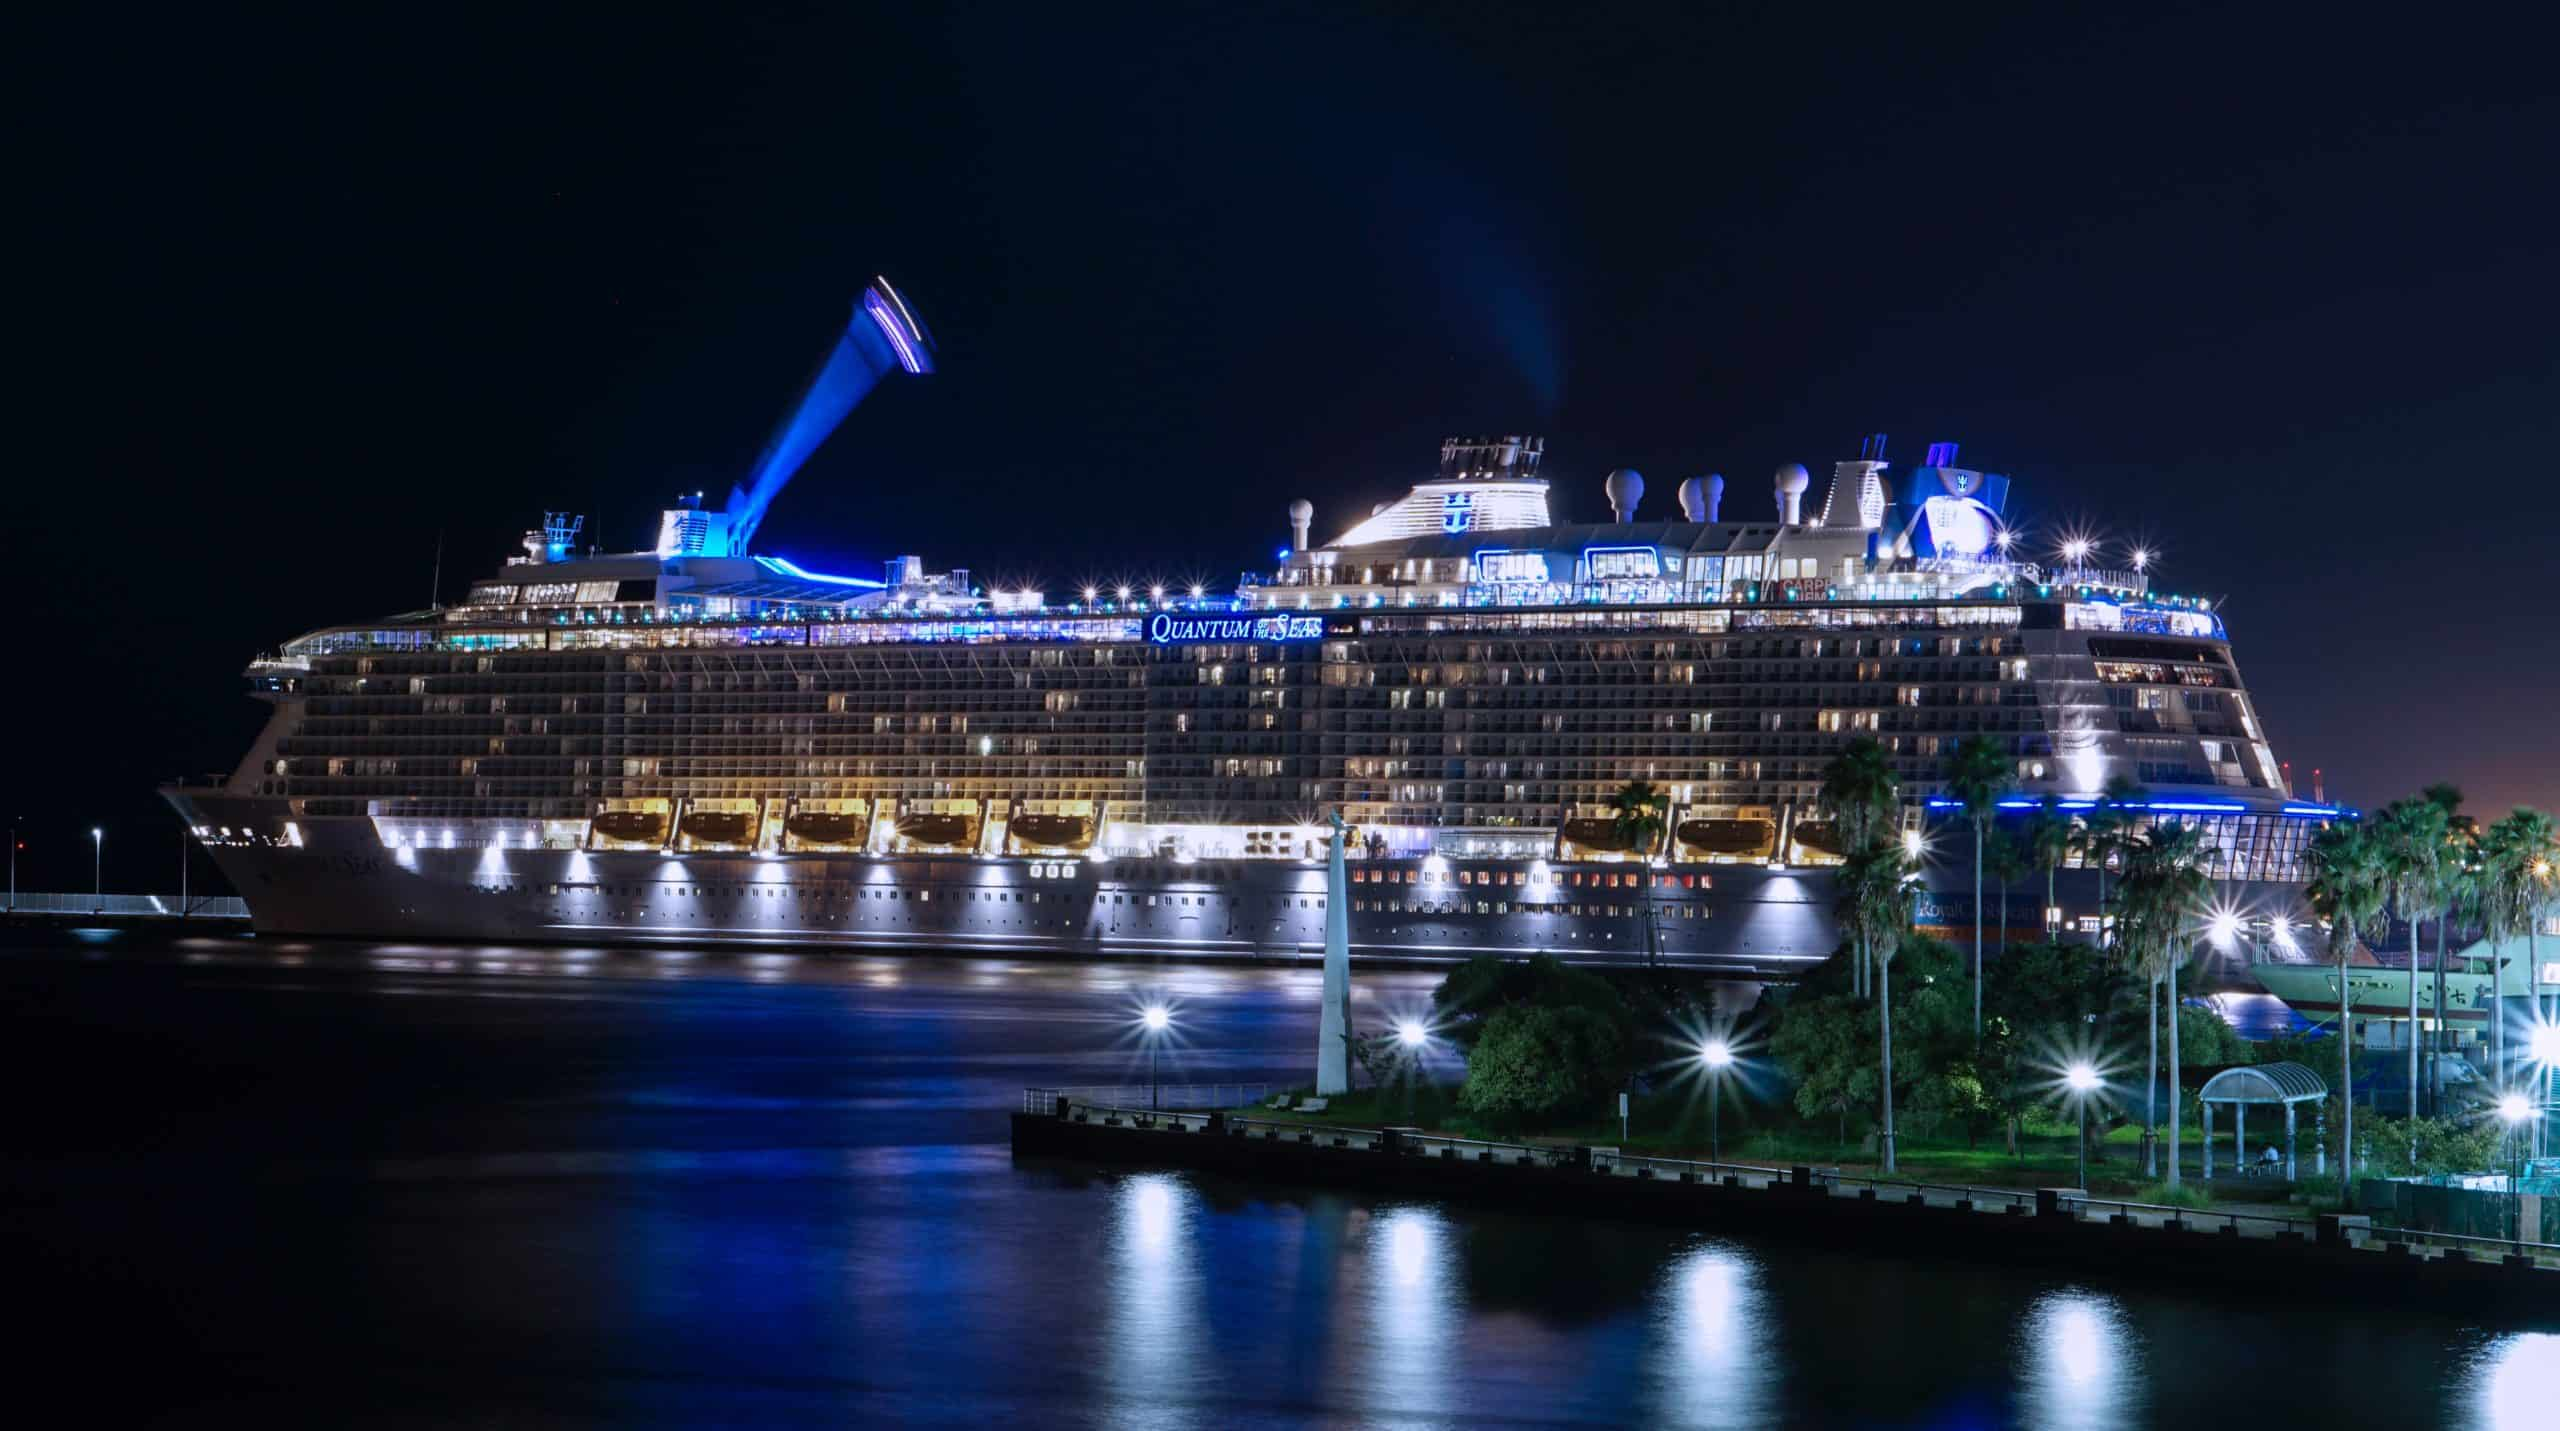 What To Pack For Sailing? 5 Things You Should Have For Cruise Trip